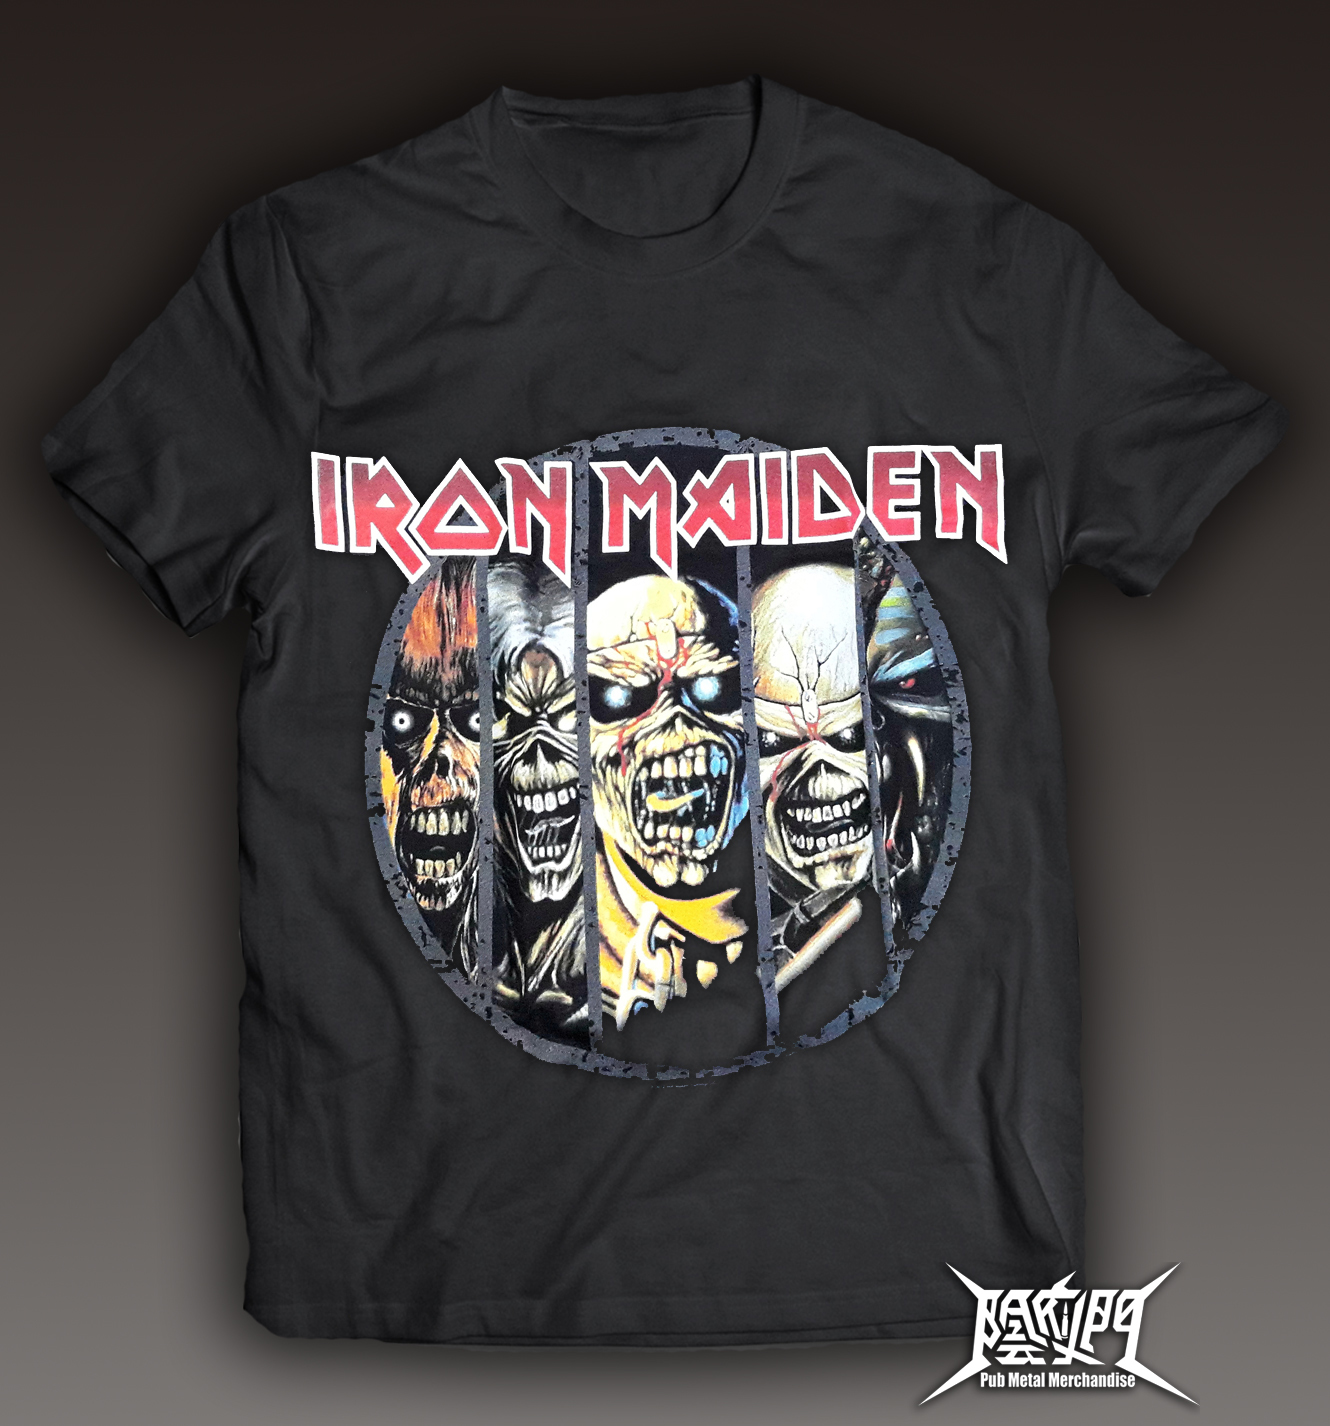 IRON MAIDEN-EDDIE EVOLUTION.jpg